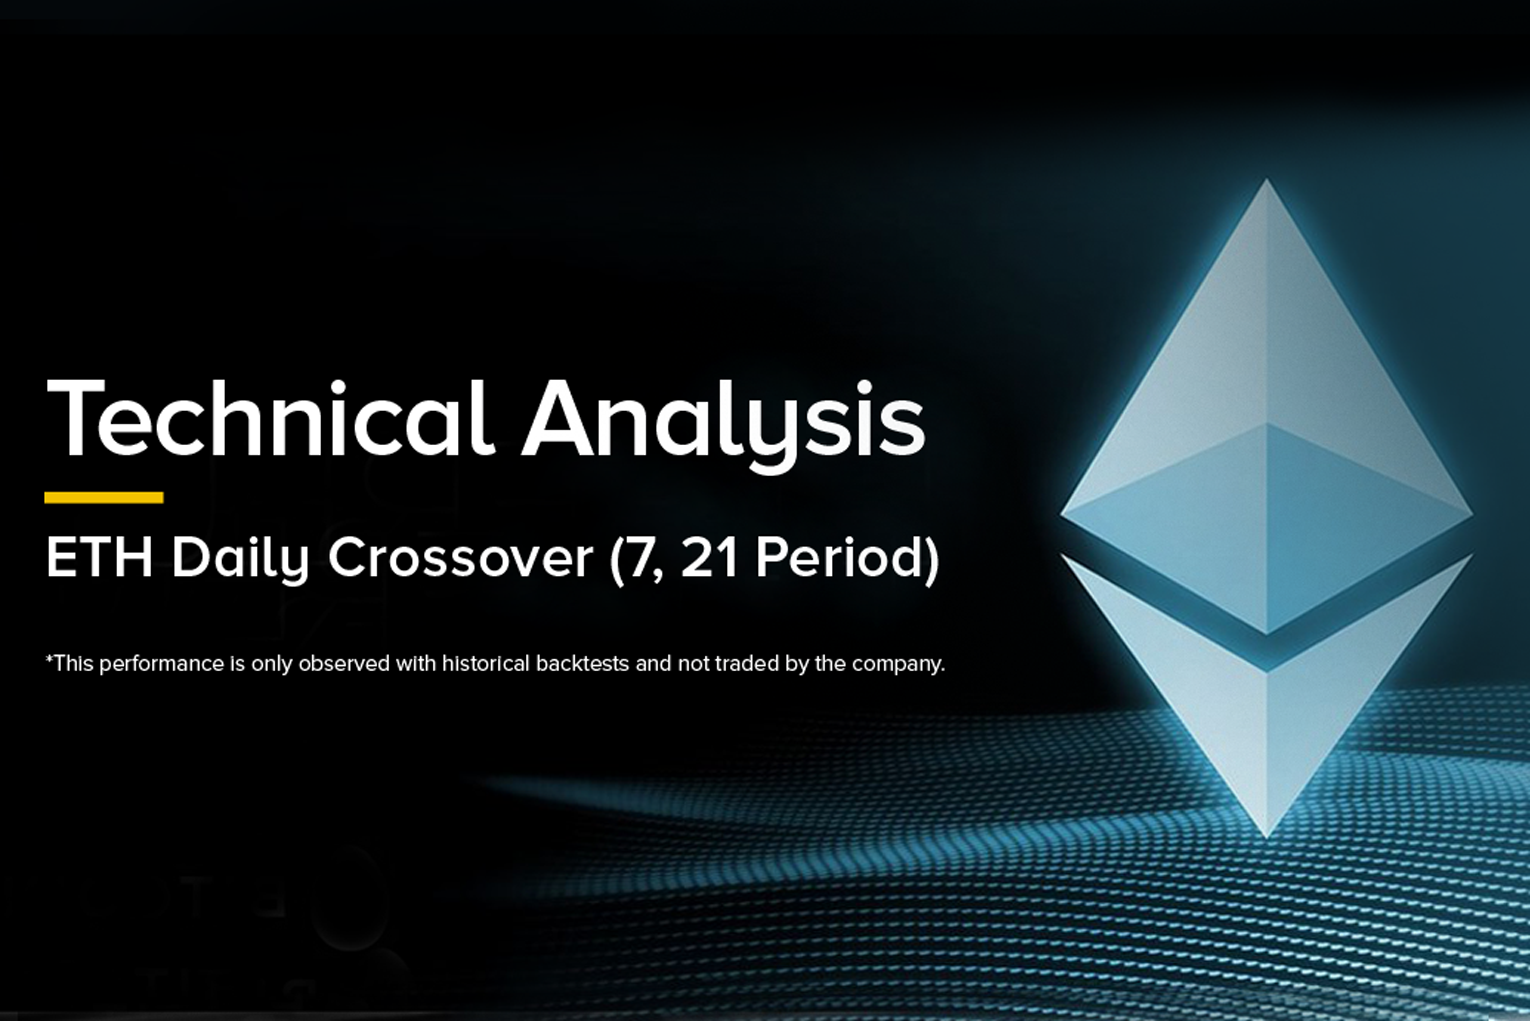 Technical Analysis - ETH Daily Crossover